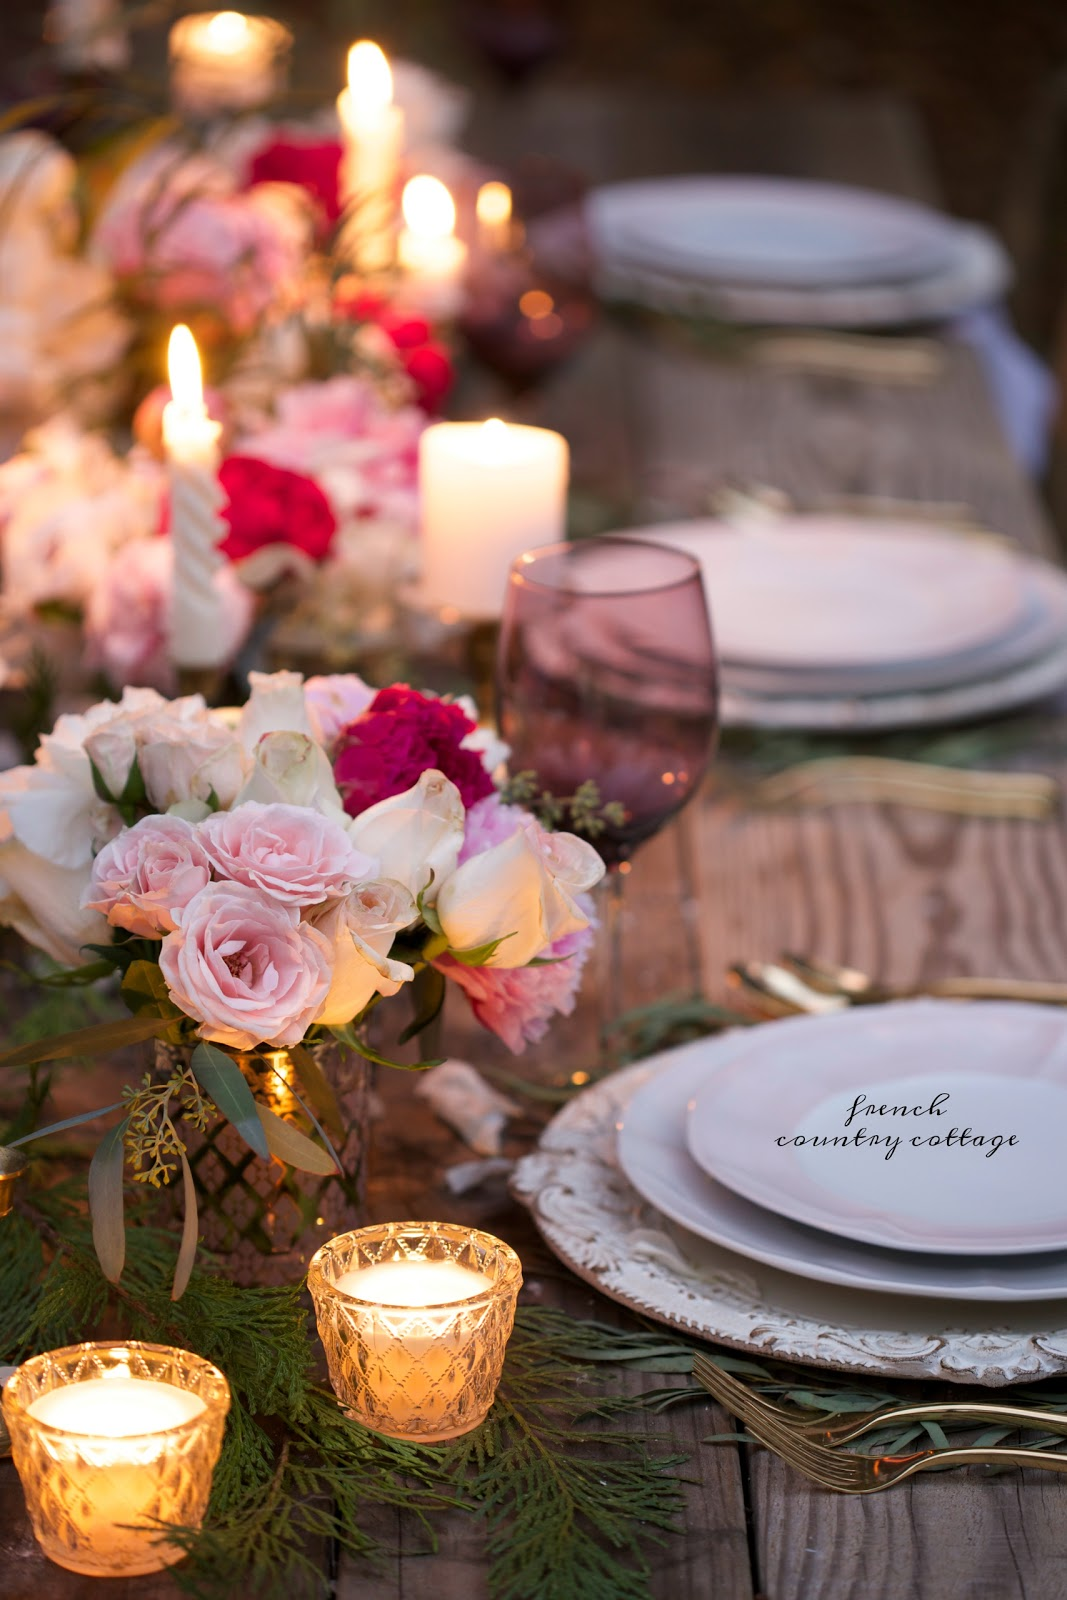 A romantic holiday party table setting - FRENCH COUNTRY COTTAGE